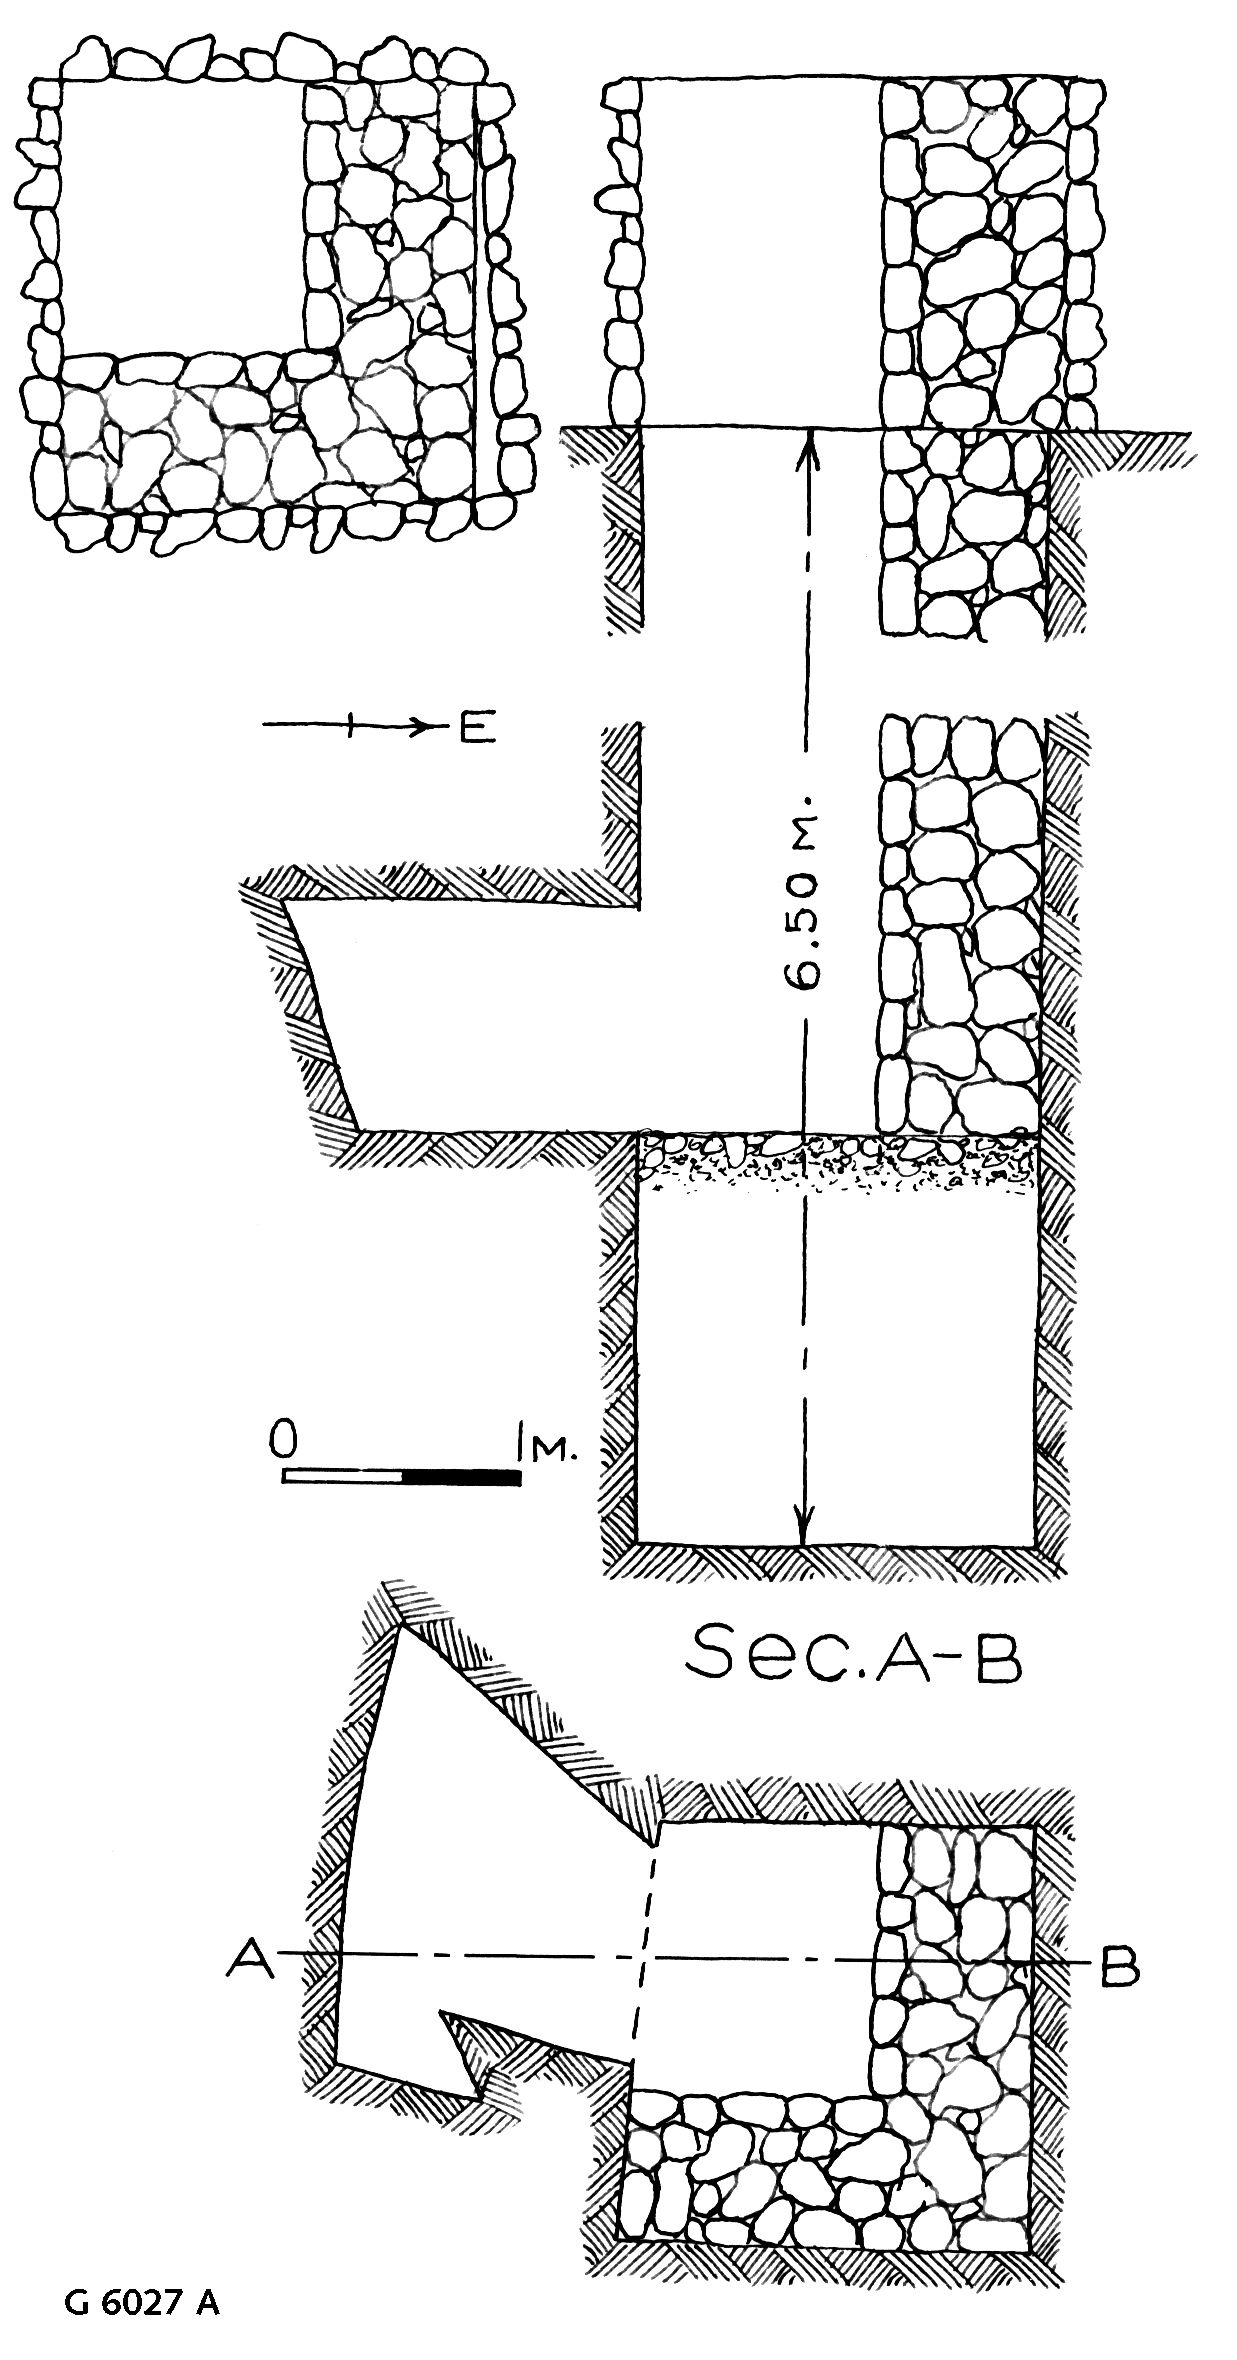 Maps and plans: G 6027, Shaft A